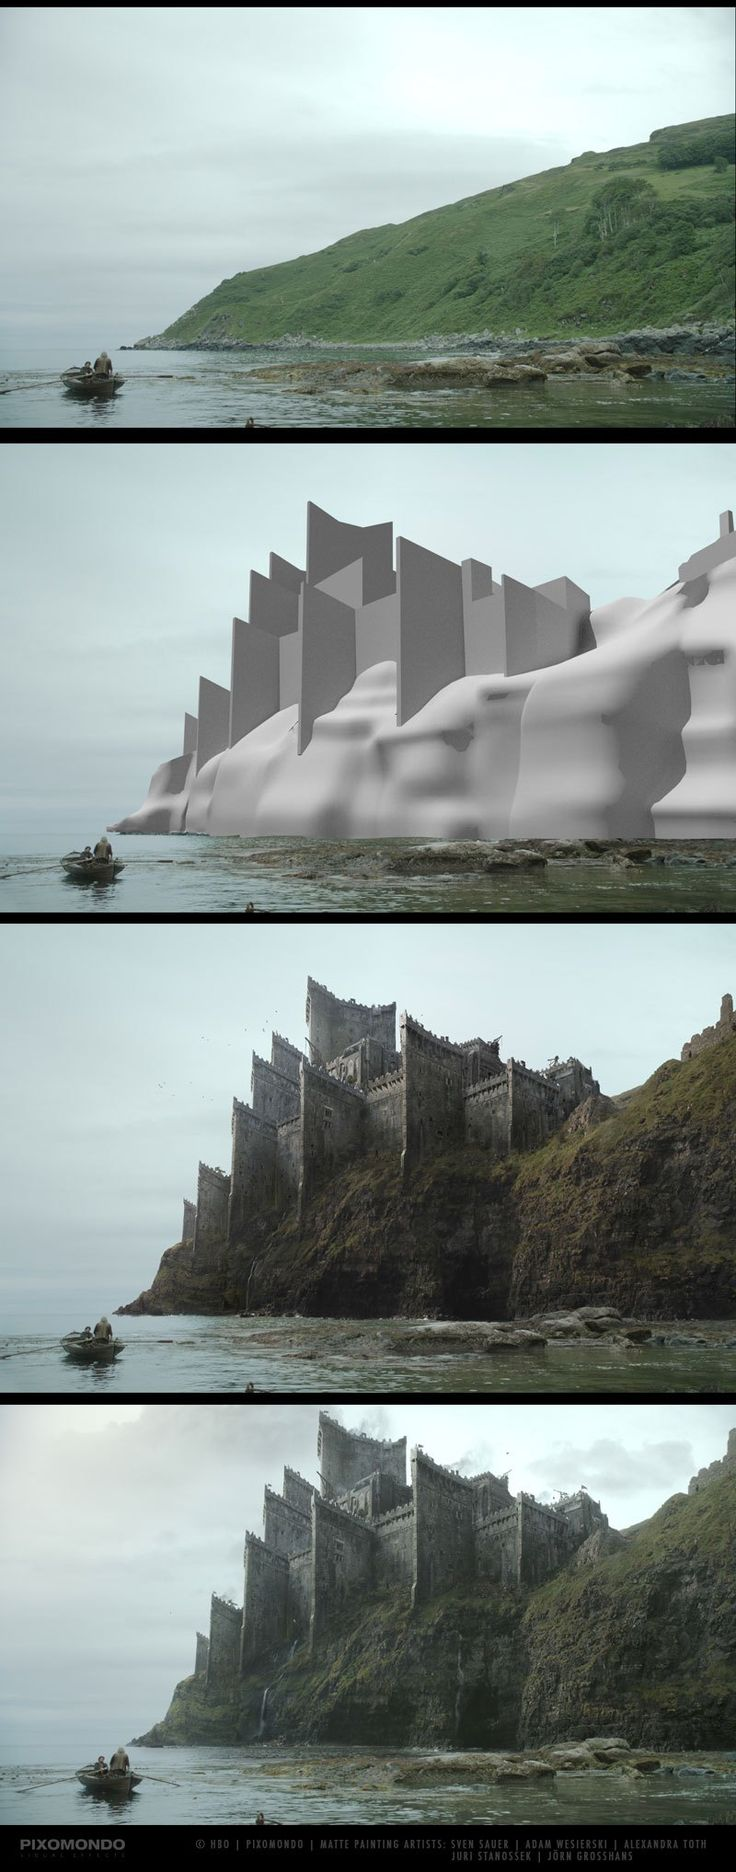 Matte Paint Dark House 27 Matte Painting Tutorials For Adobe Photoshop - The digital artists that paint the game of thrones landscapes popular tv seriesgame thronesfantasy landscapematte paintingthe